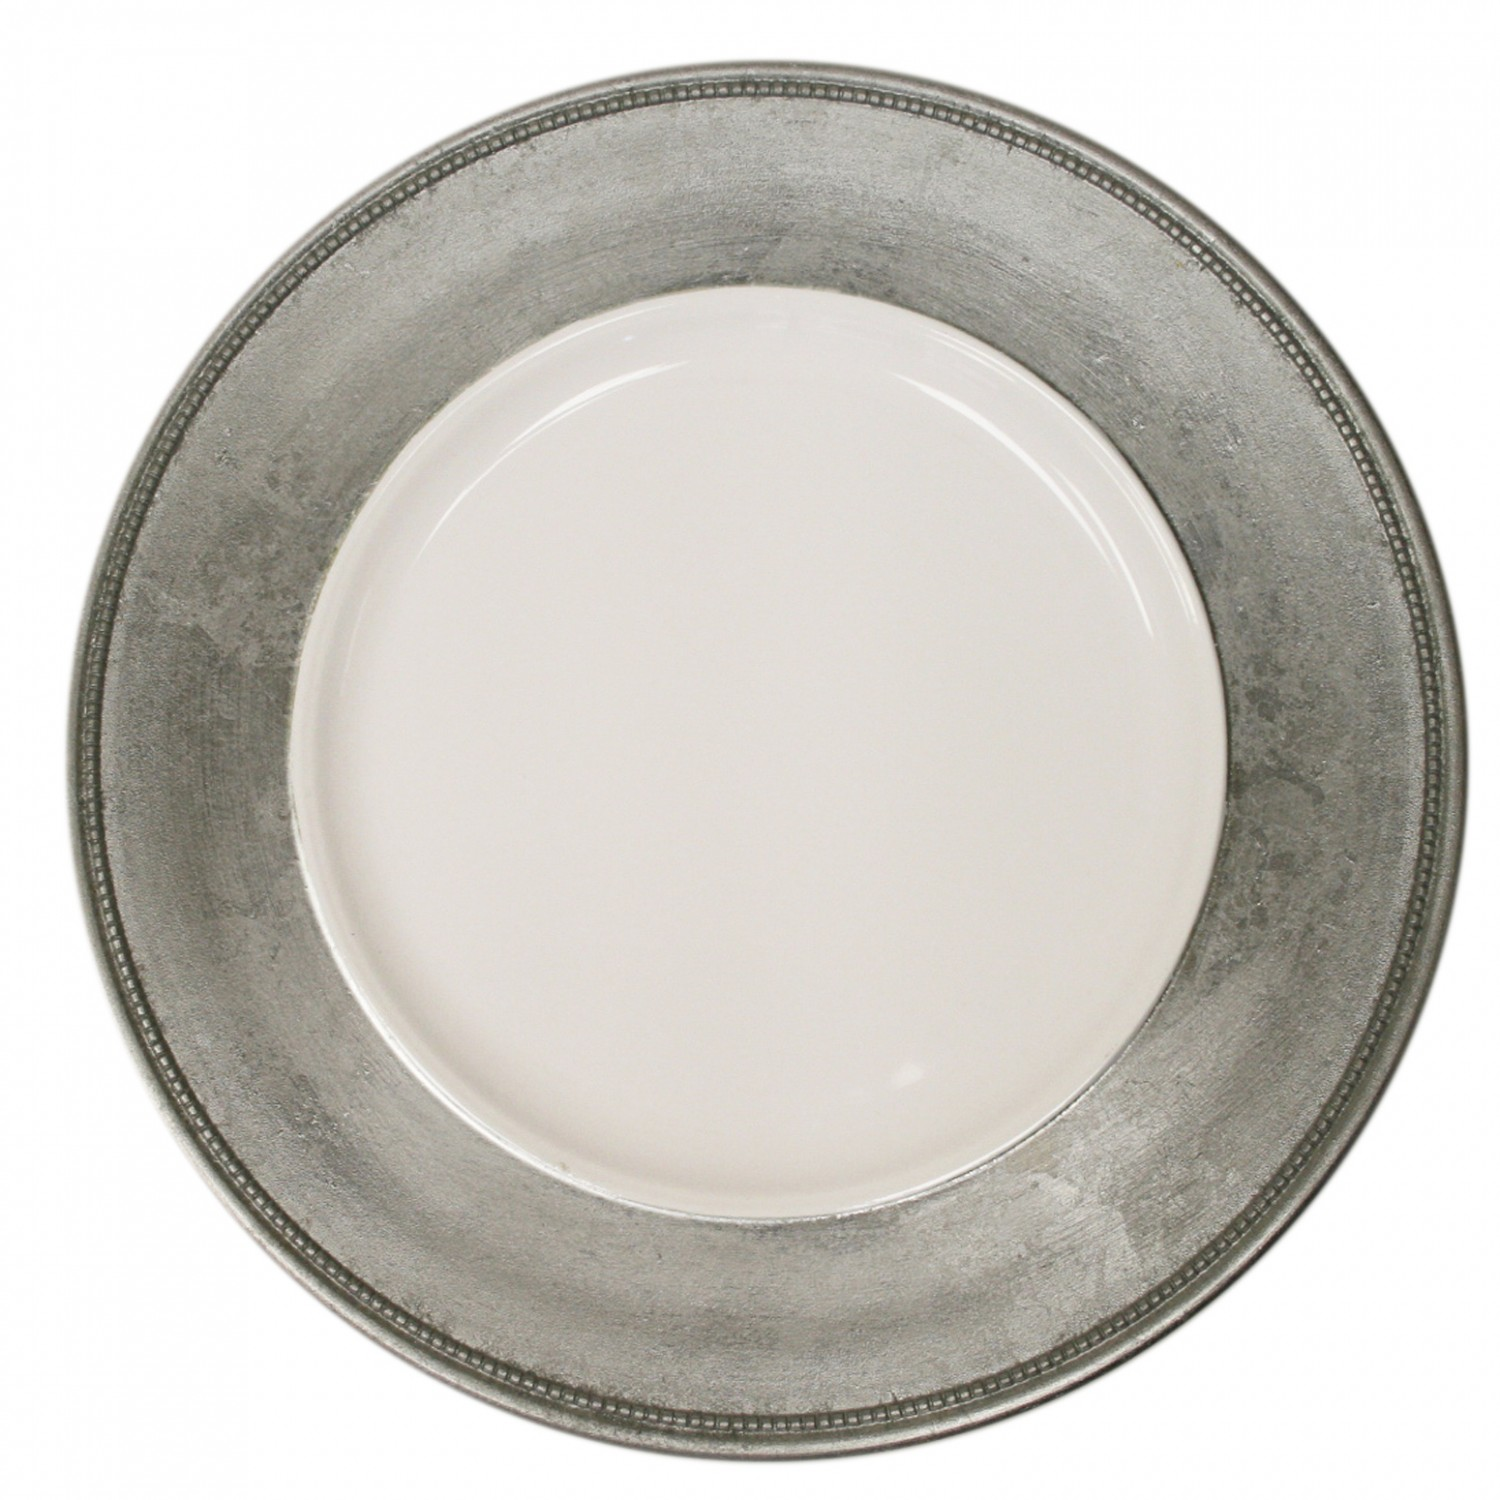 The Jay Companies A466HRK-W Round Silver Leaf Rim Charger Plate 13&